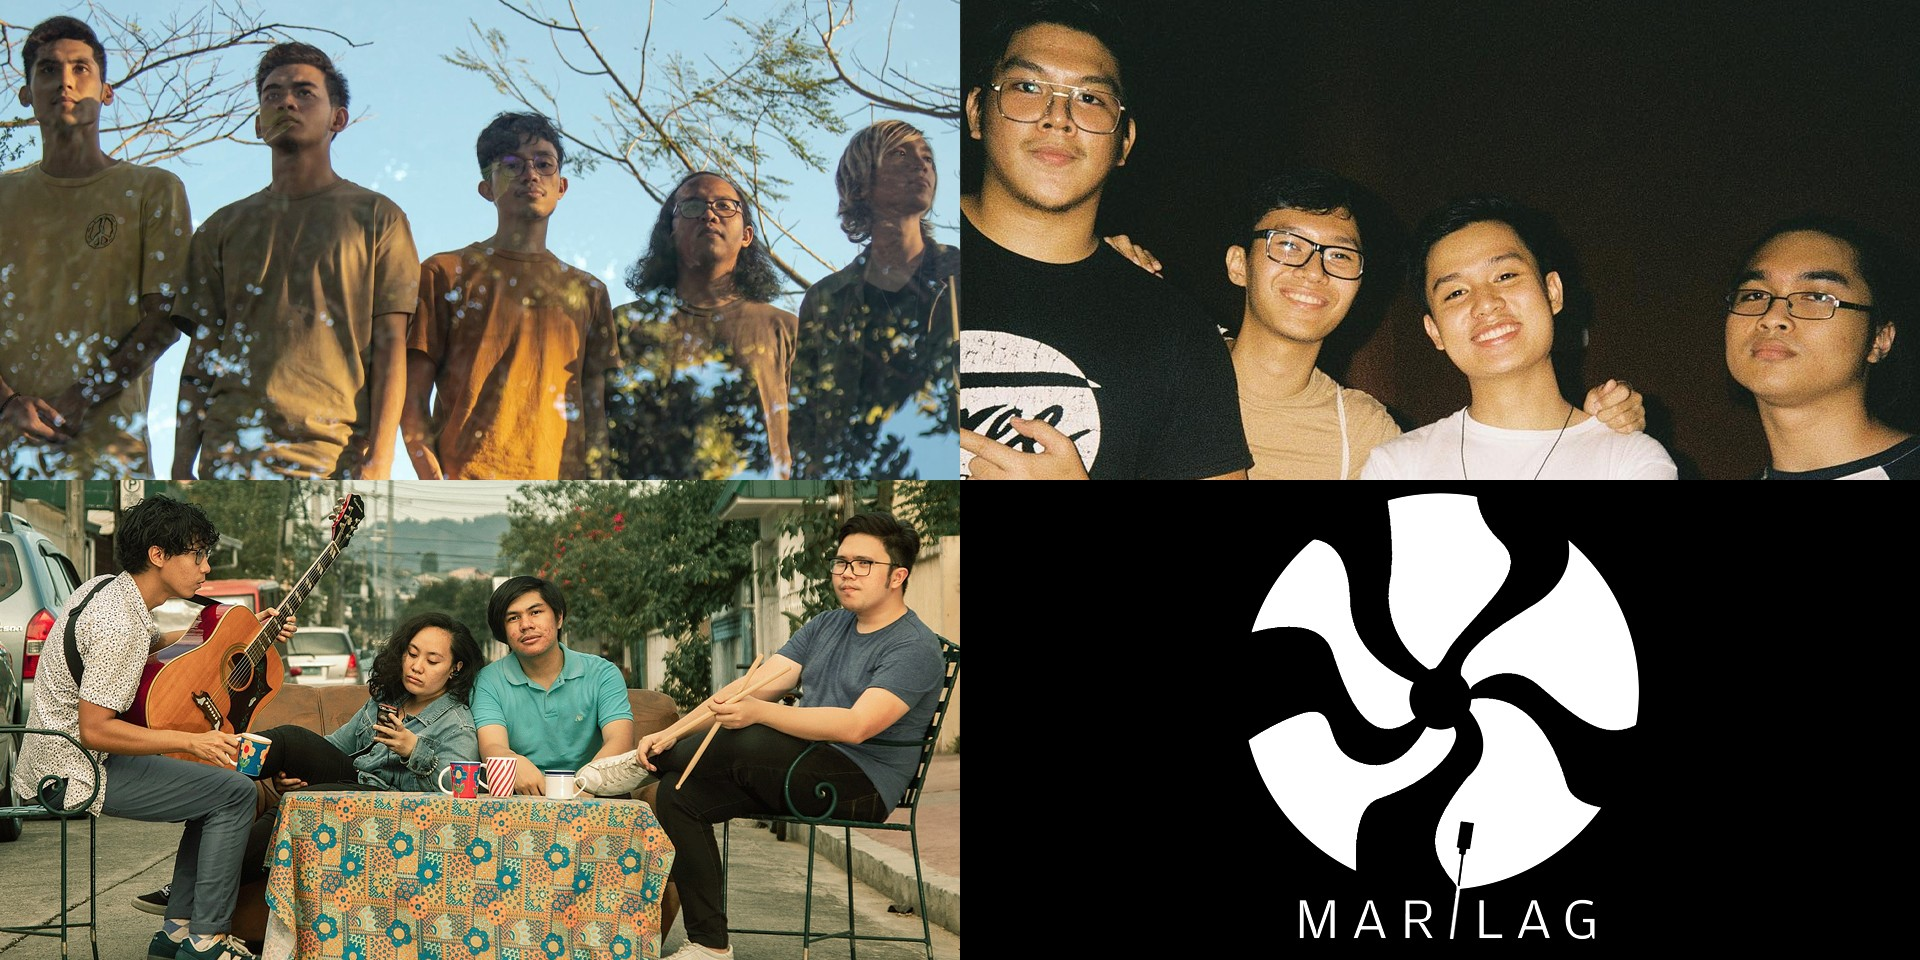 Marilag Records to end #AllTogether project